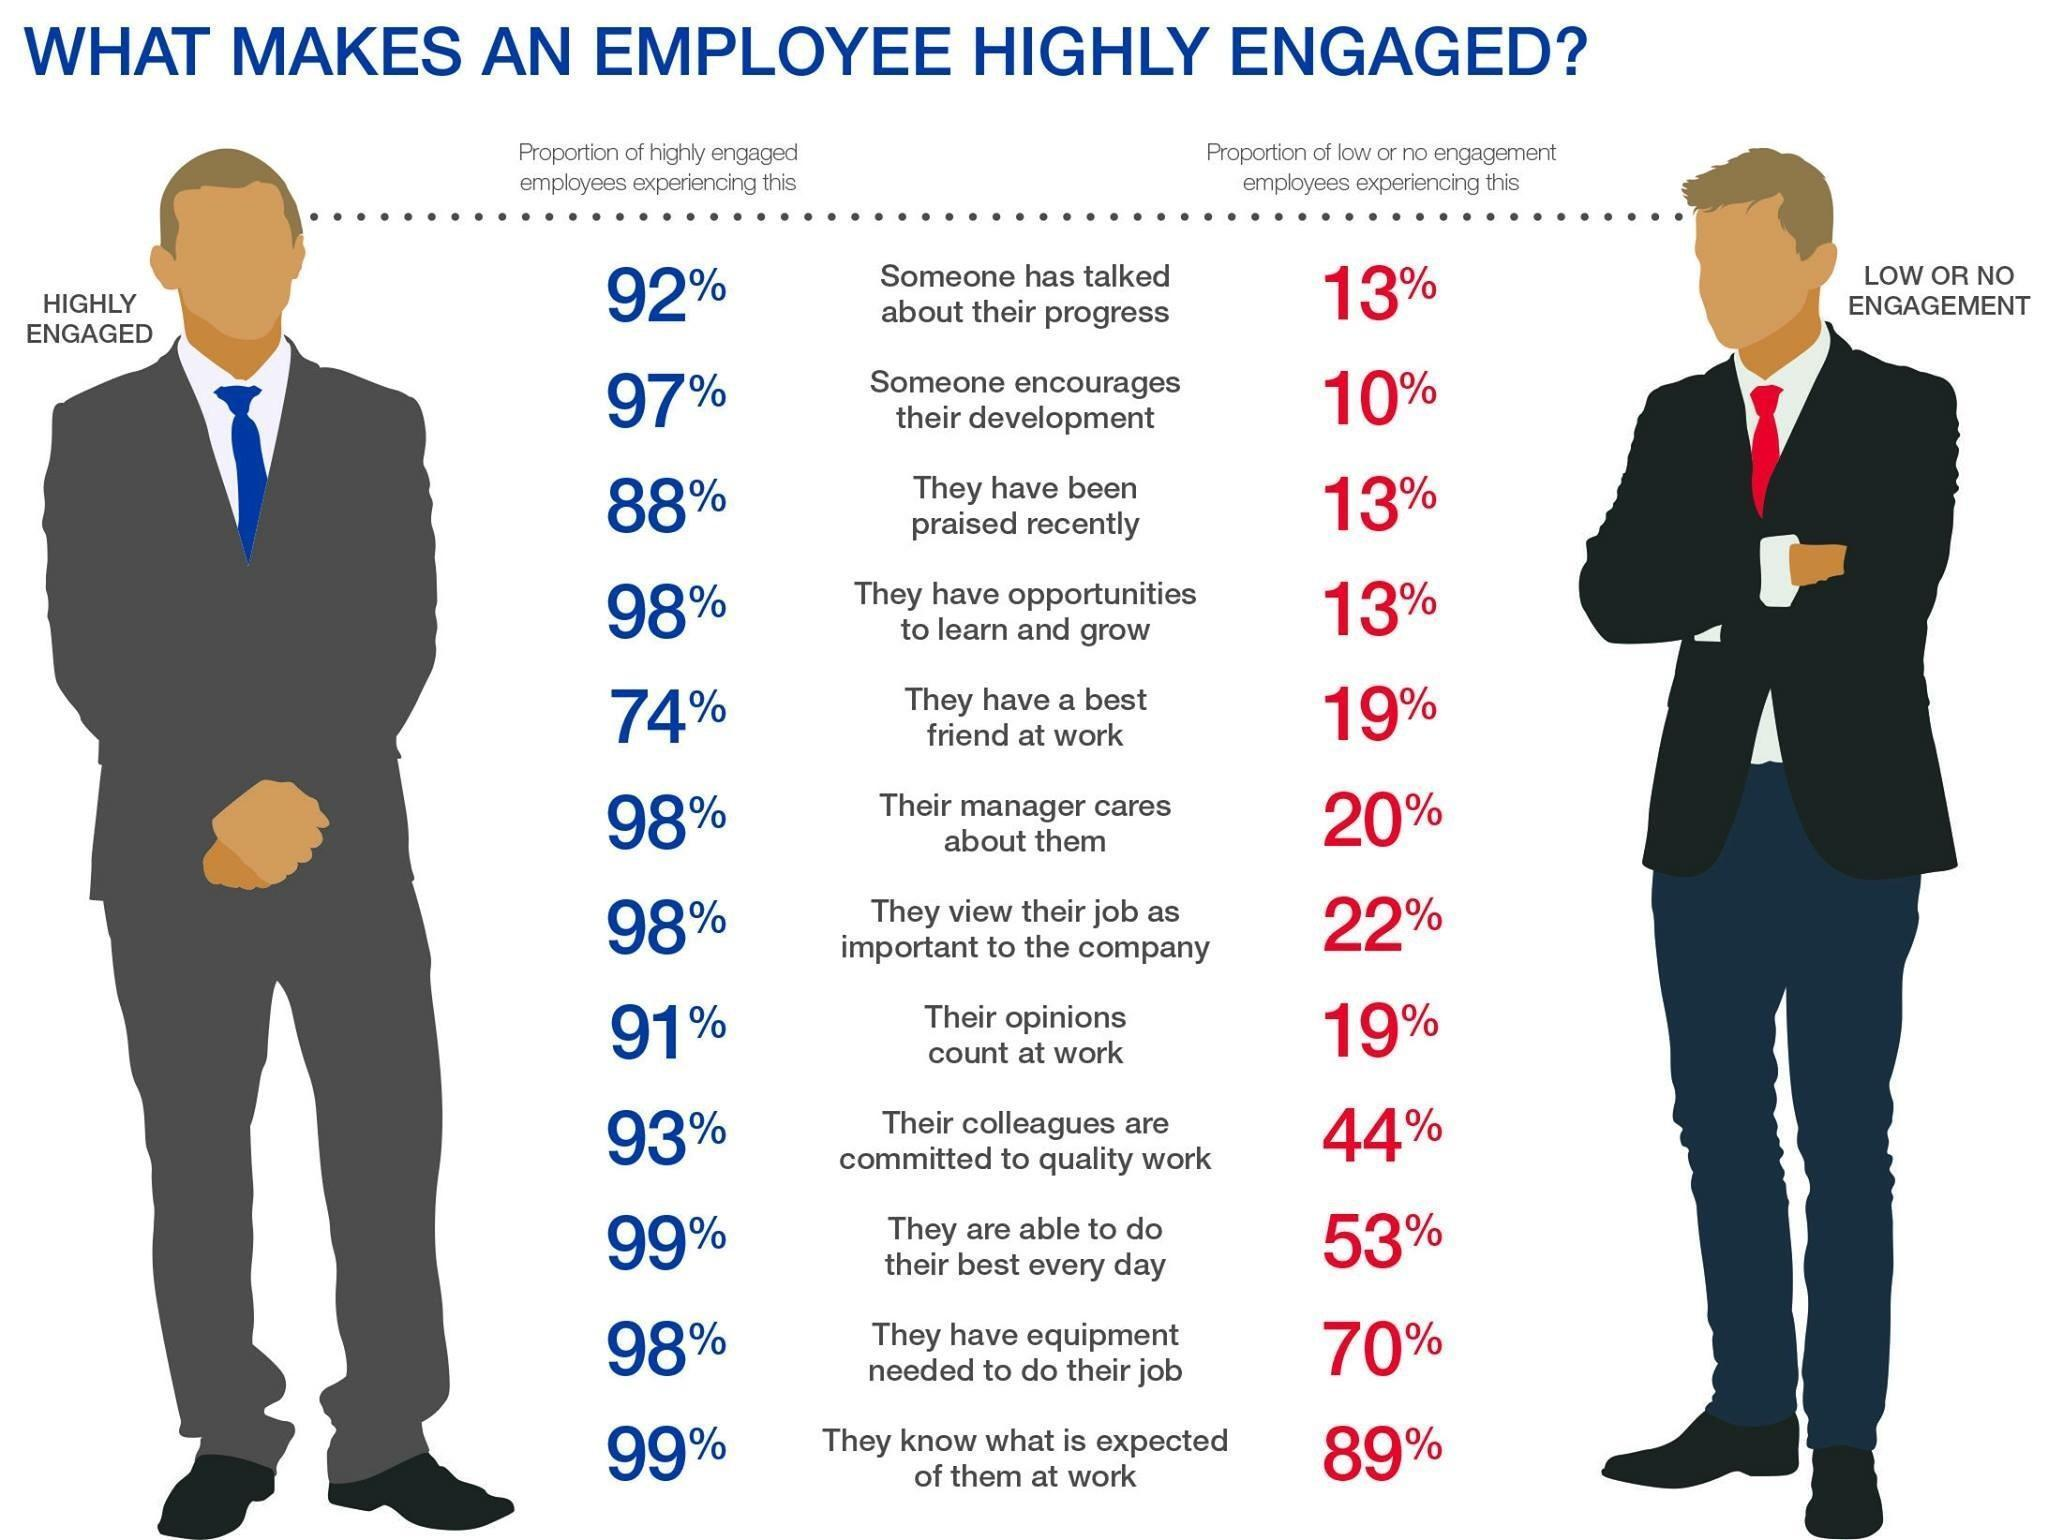 Where do we stand on employee engagement today?